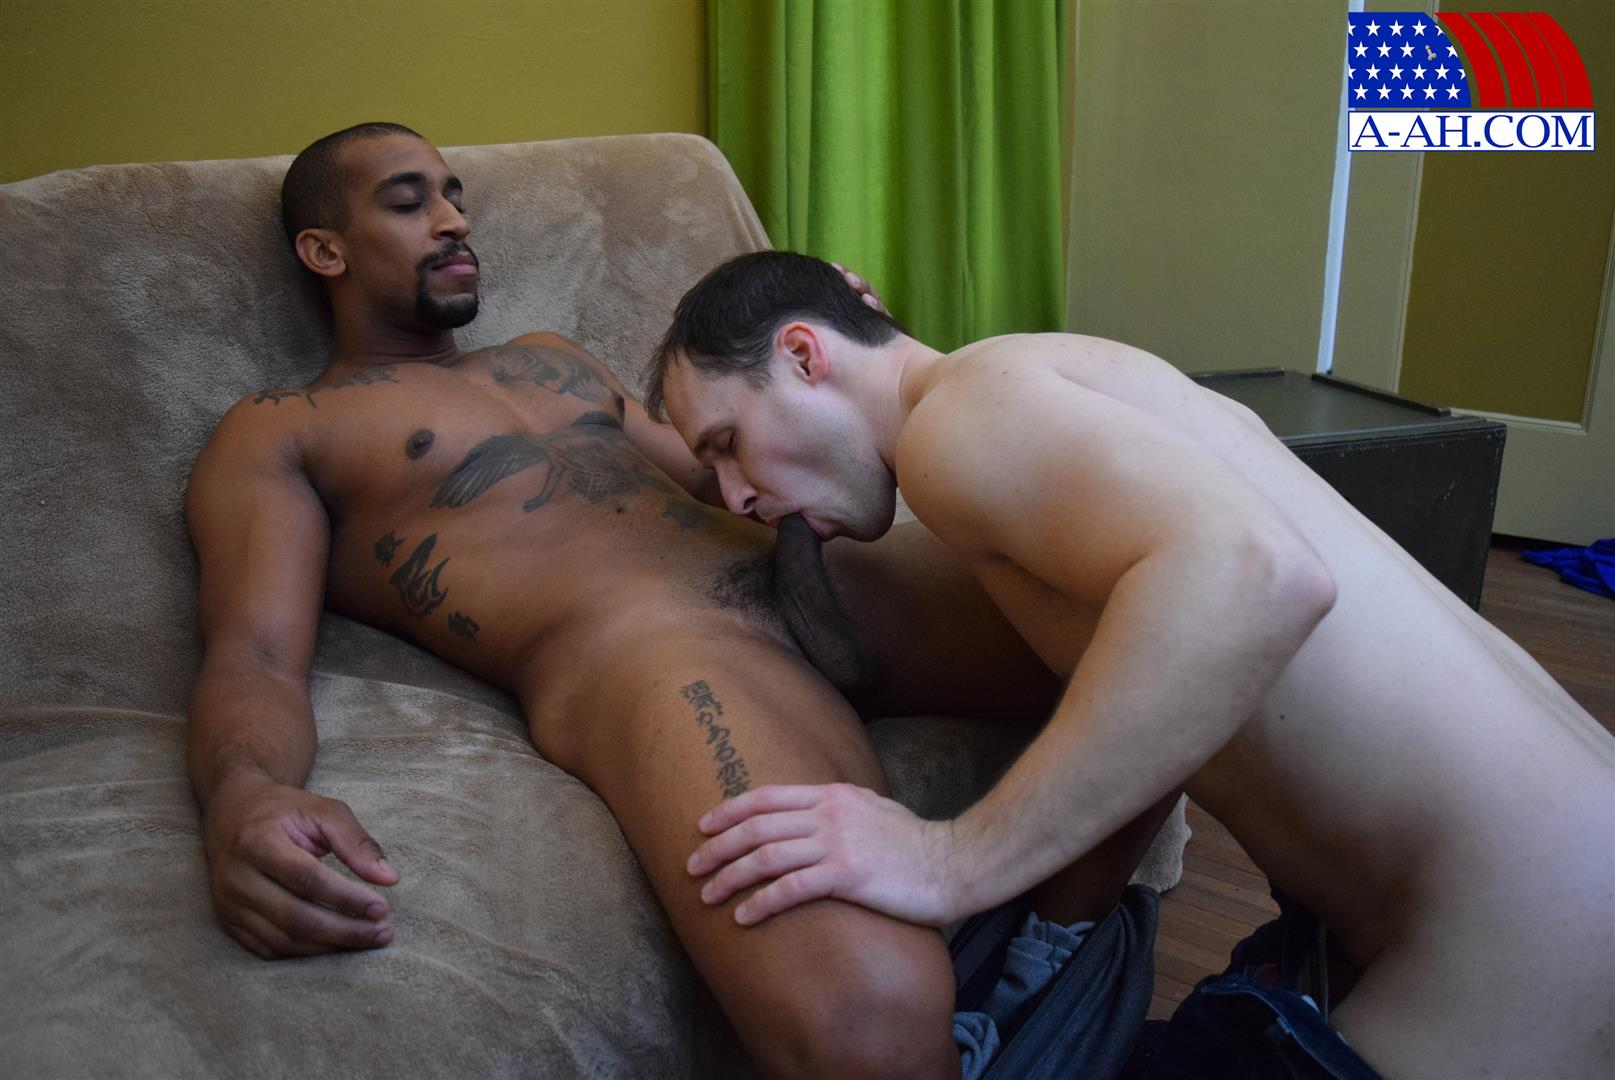 Interracial Gay Porn 76